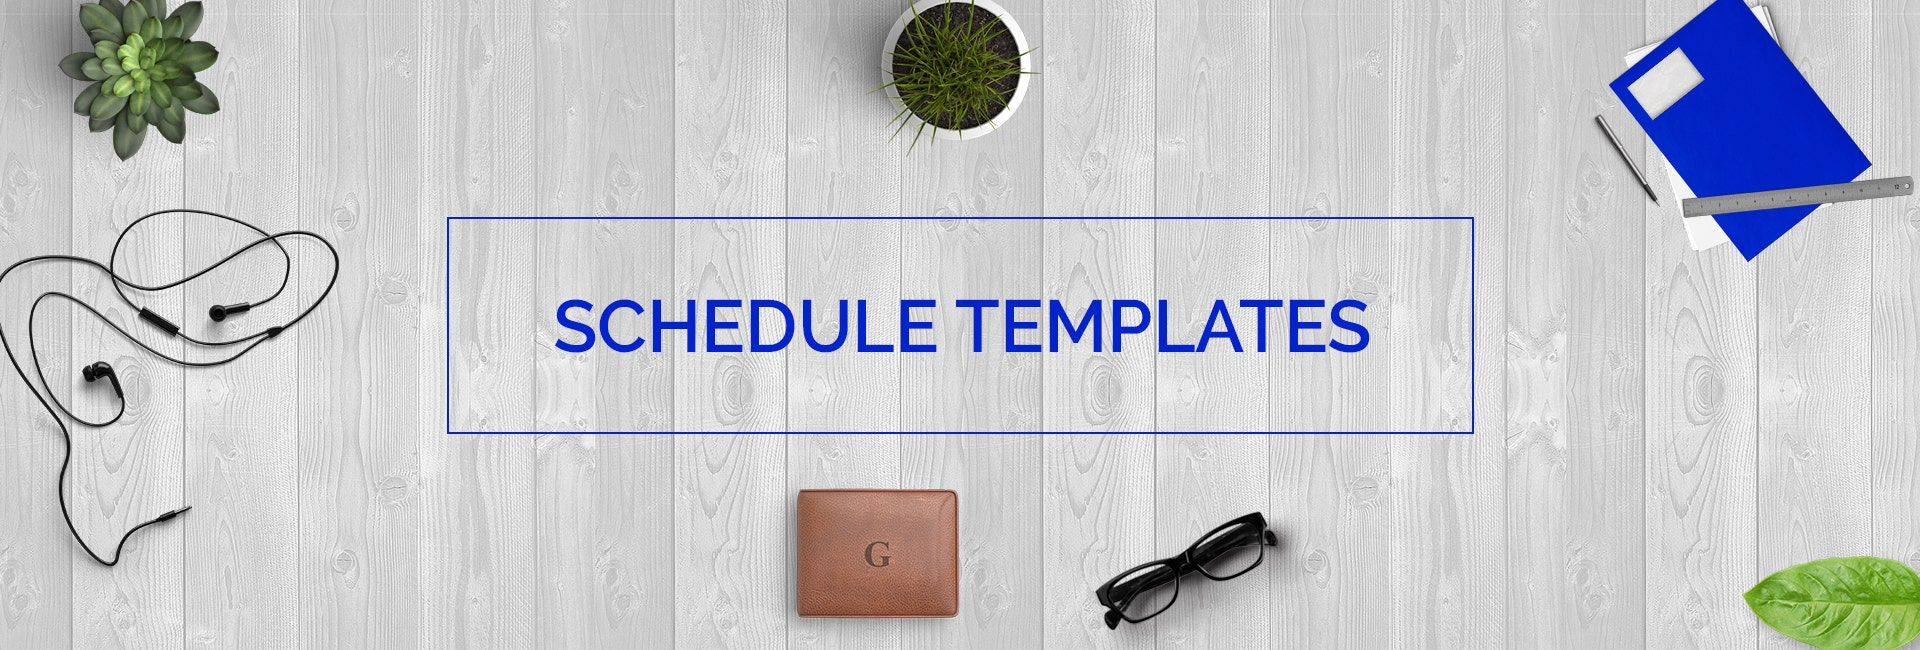 scheduletemplates1